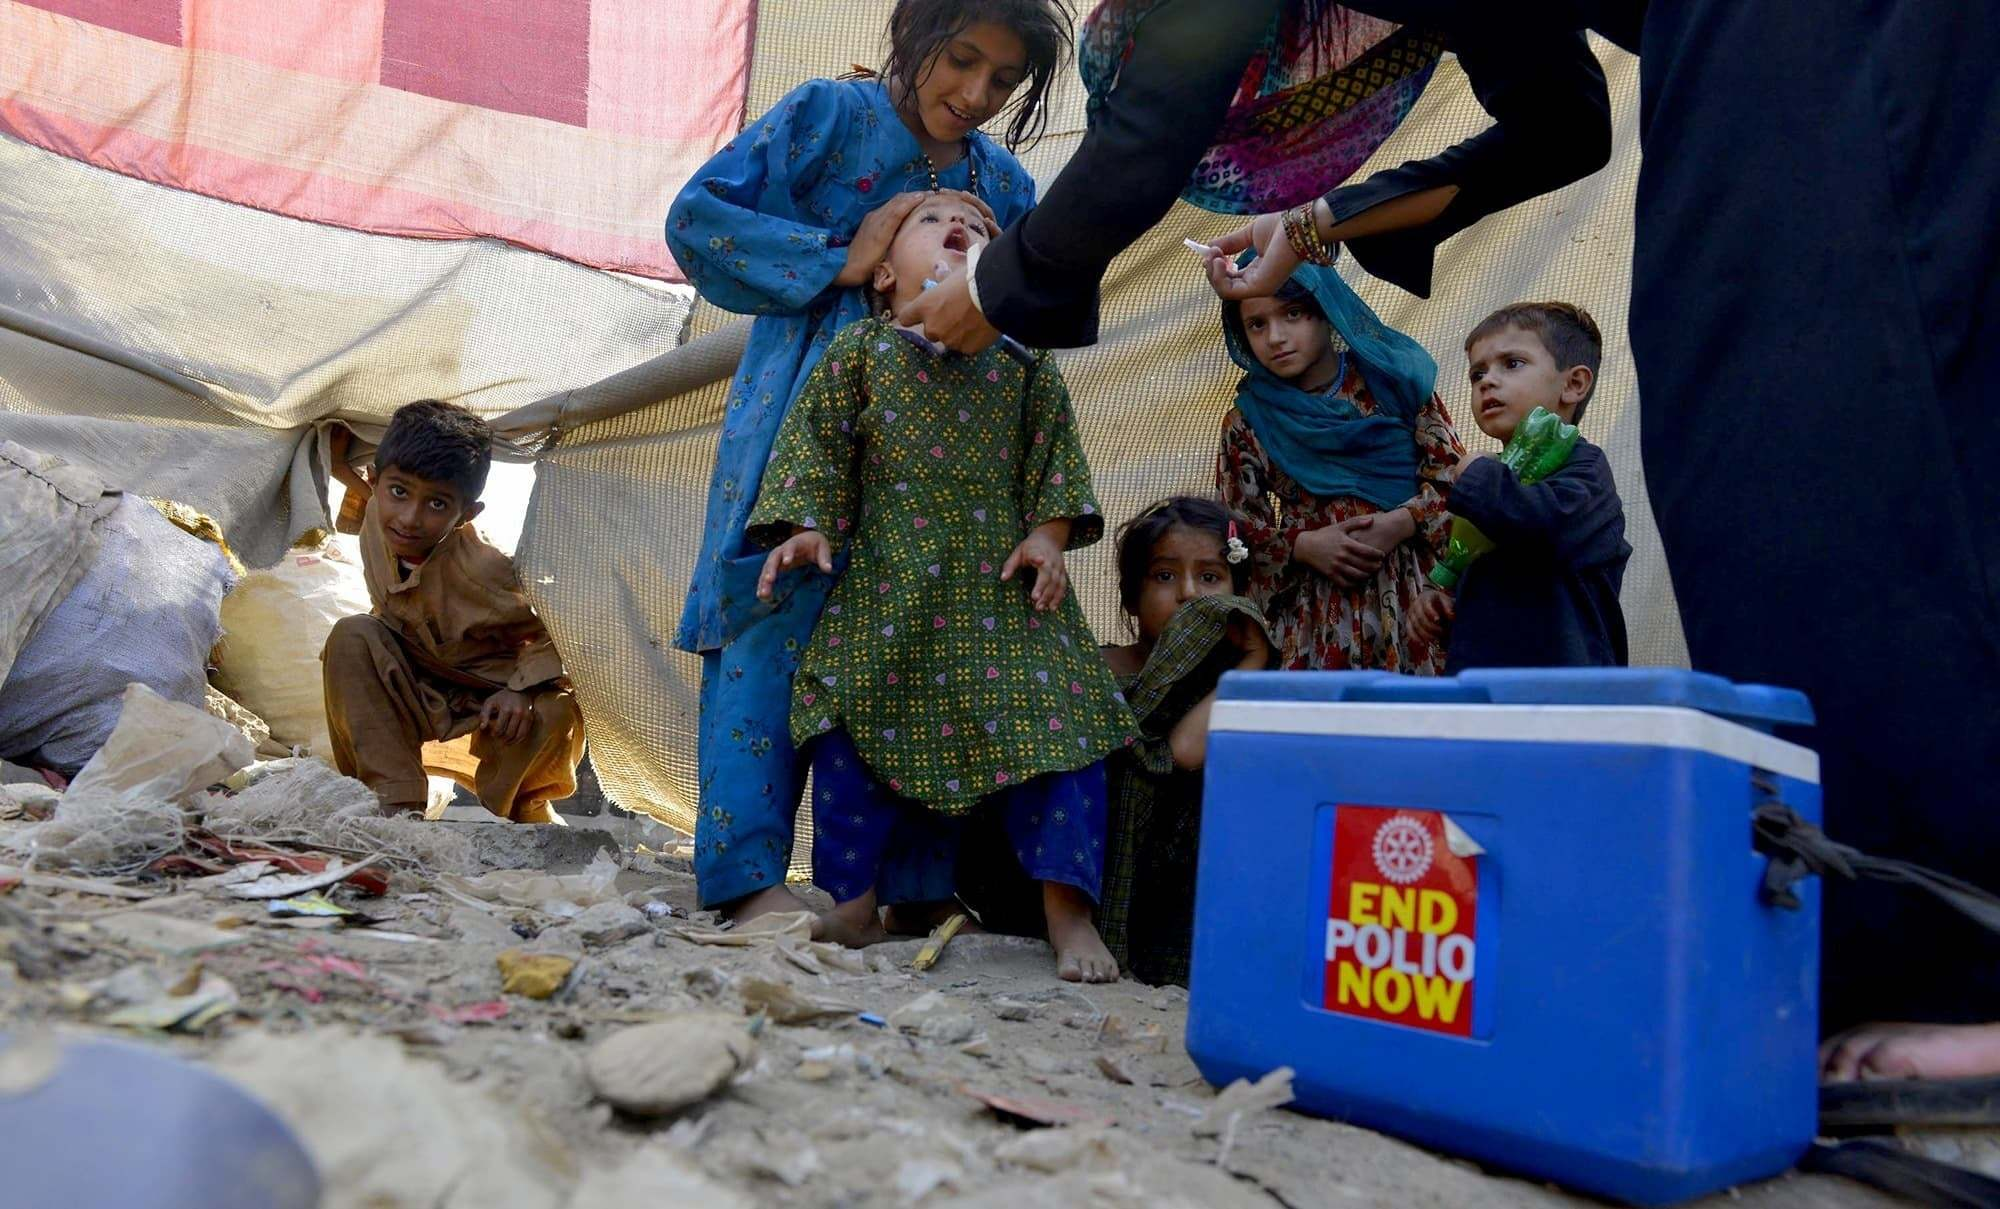 A team of senior health officials from the Punjab government on Tuesday began an inquiry into the use of an expired polio vaccine and sought advice from the World Health Organisation on how to deal with those affected. — AFP/File